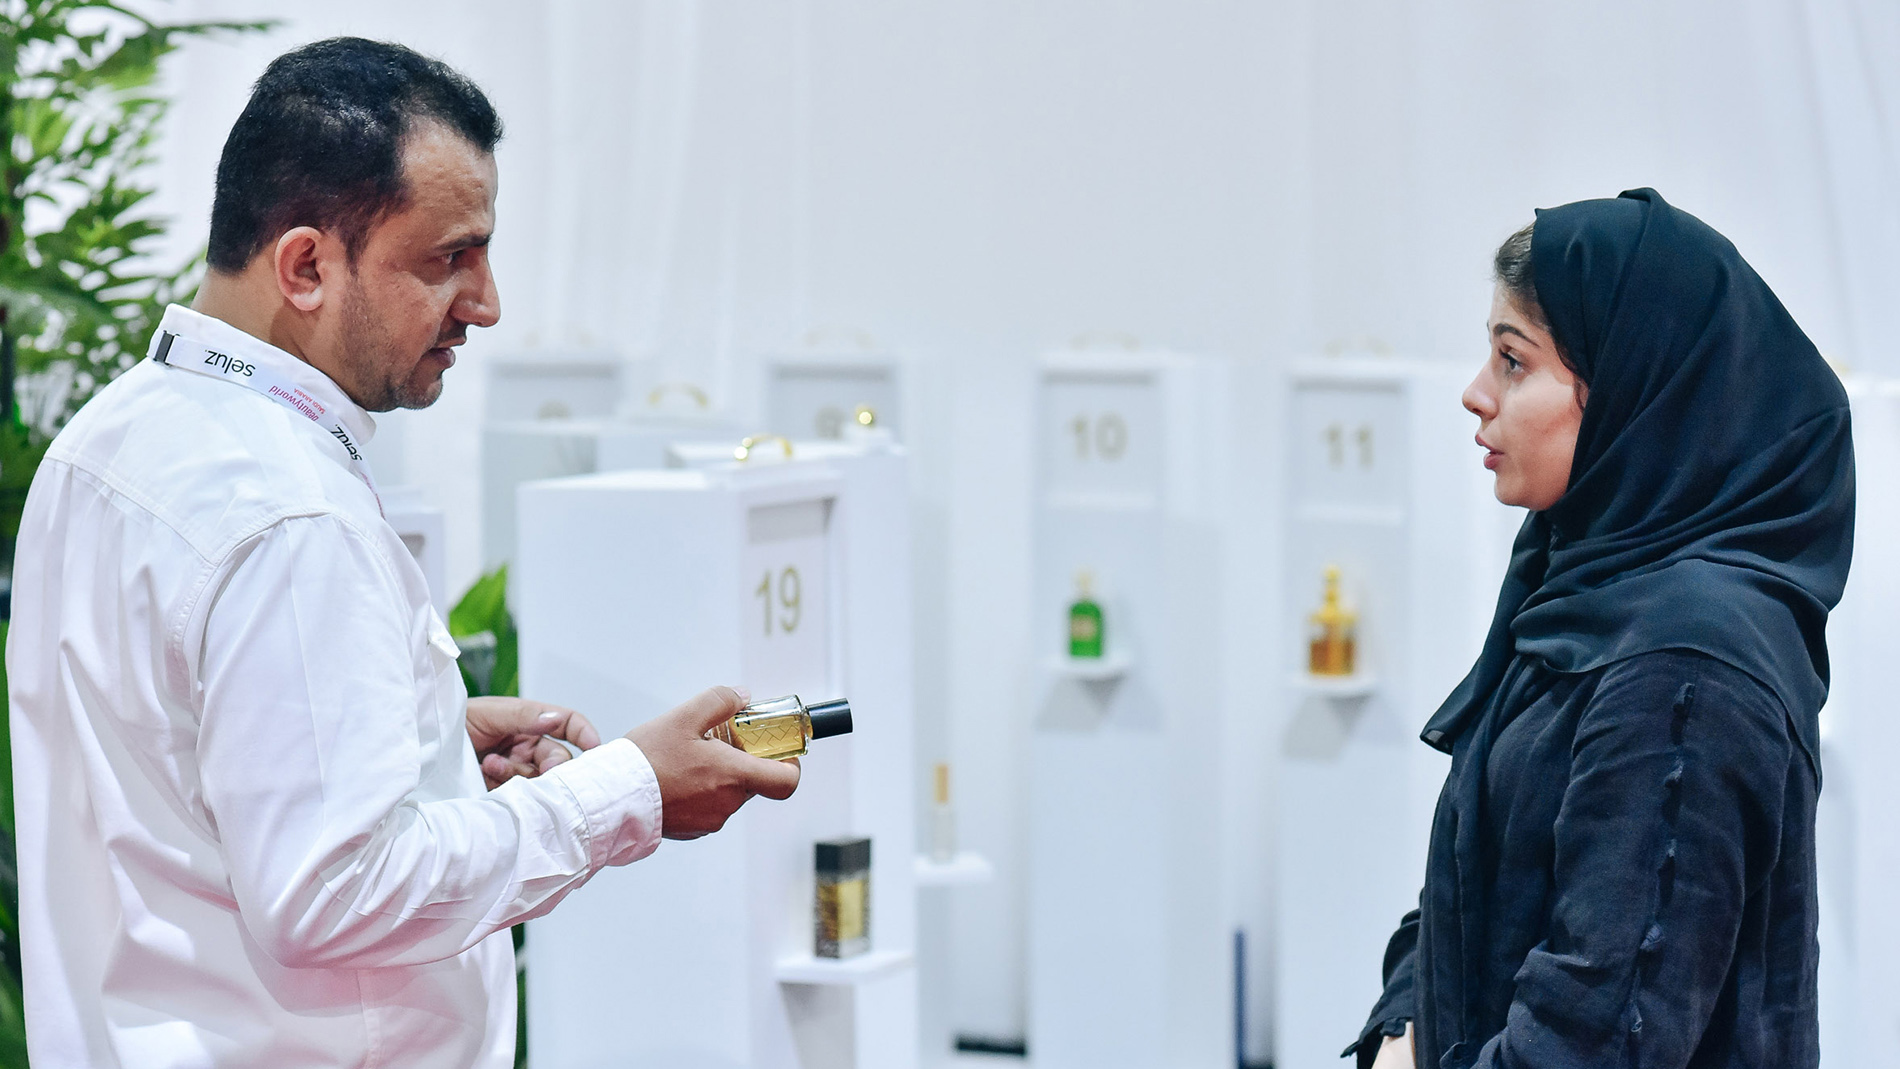 Beautyworld Saudi Arabia - Exhibitor interaction at Fragrance Station